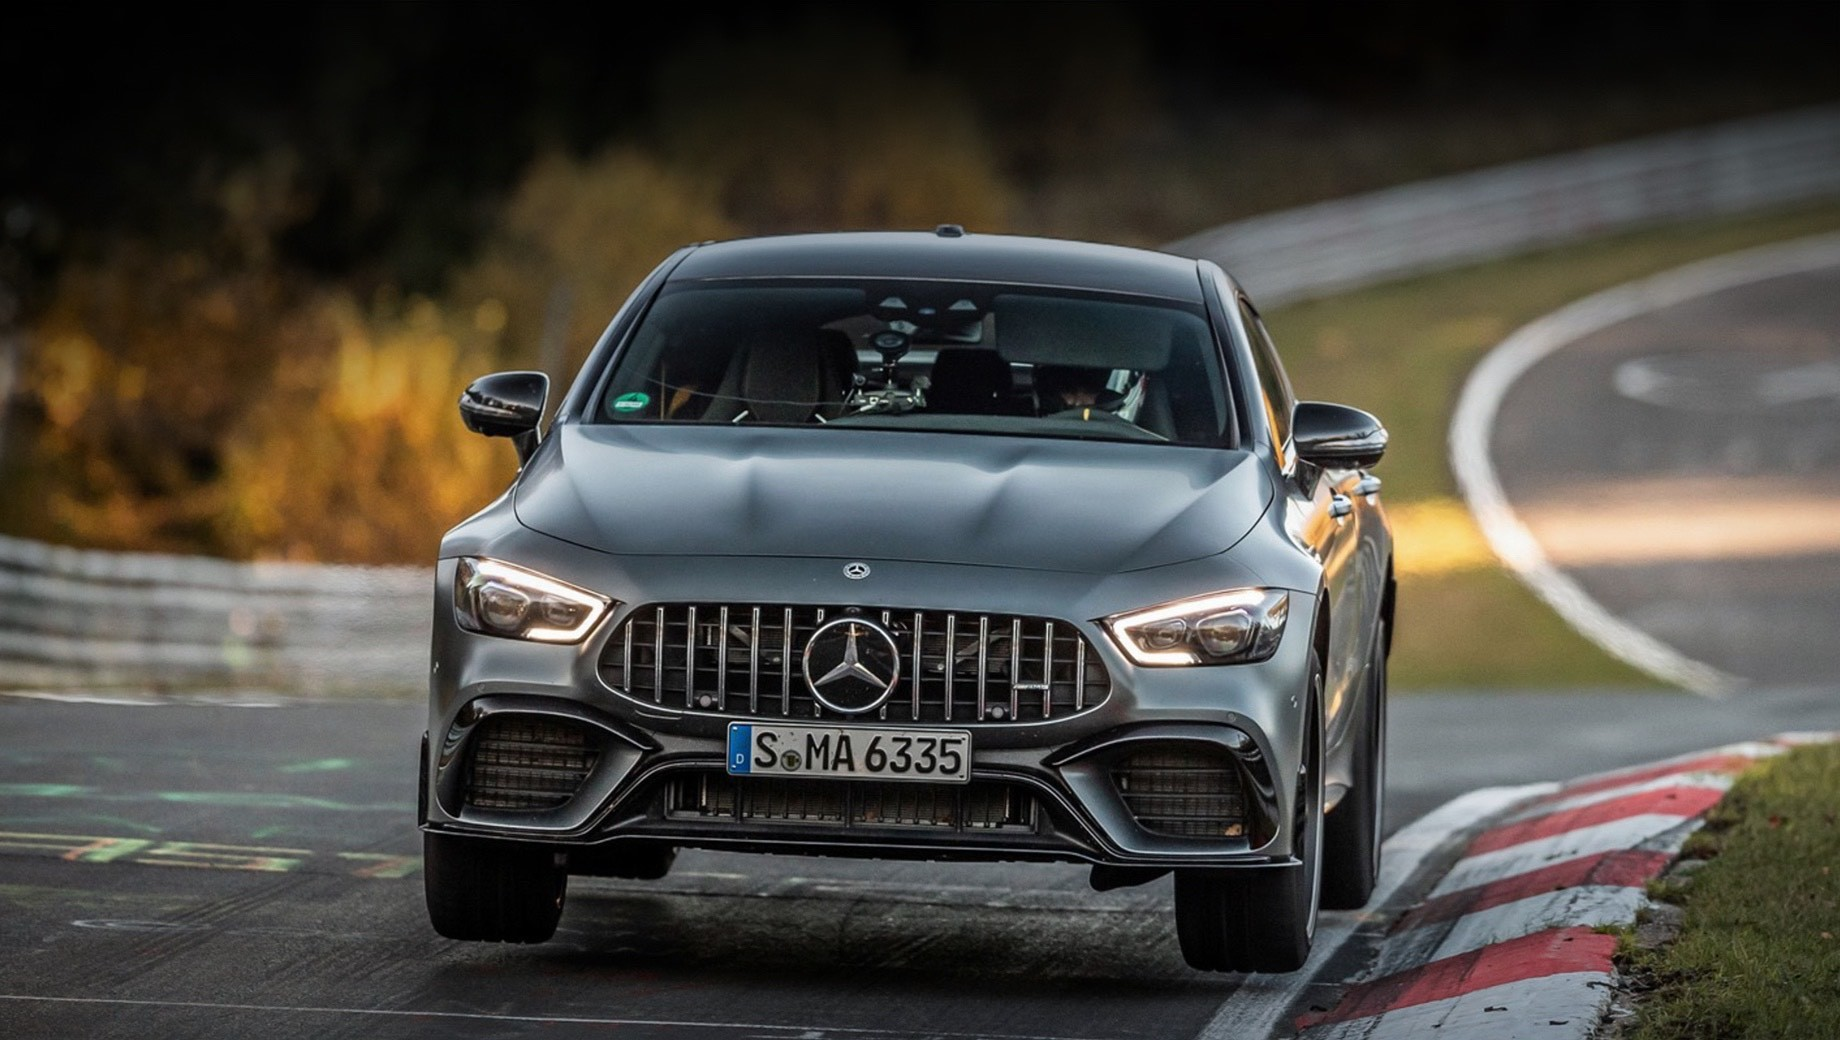 Mercedes-AMG GT 63 S 4Matic вернул себе корону на Нордшляйфе